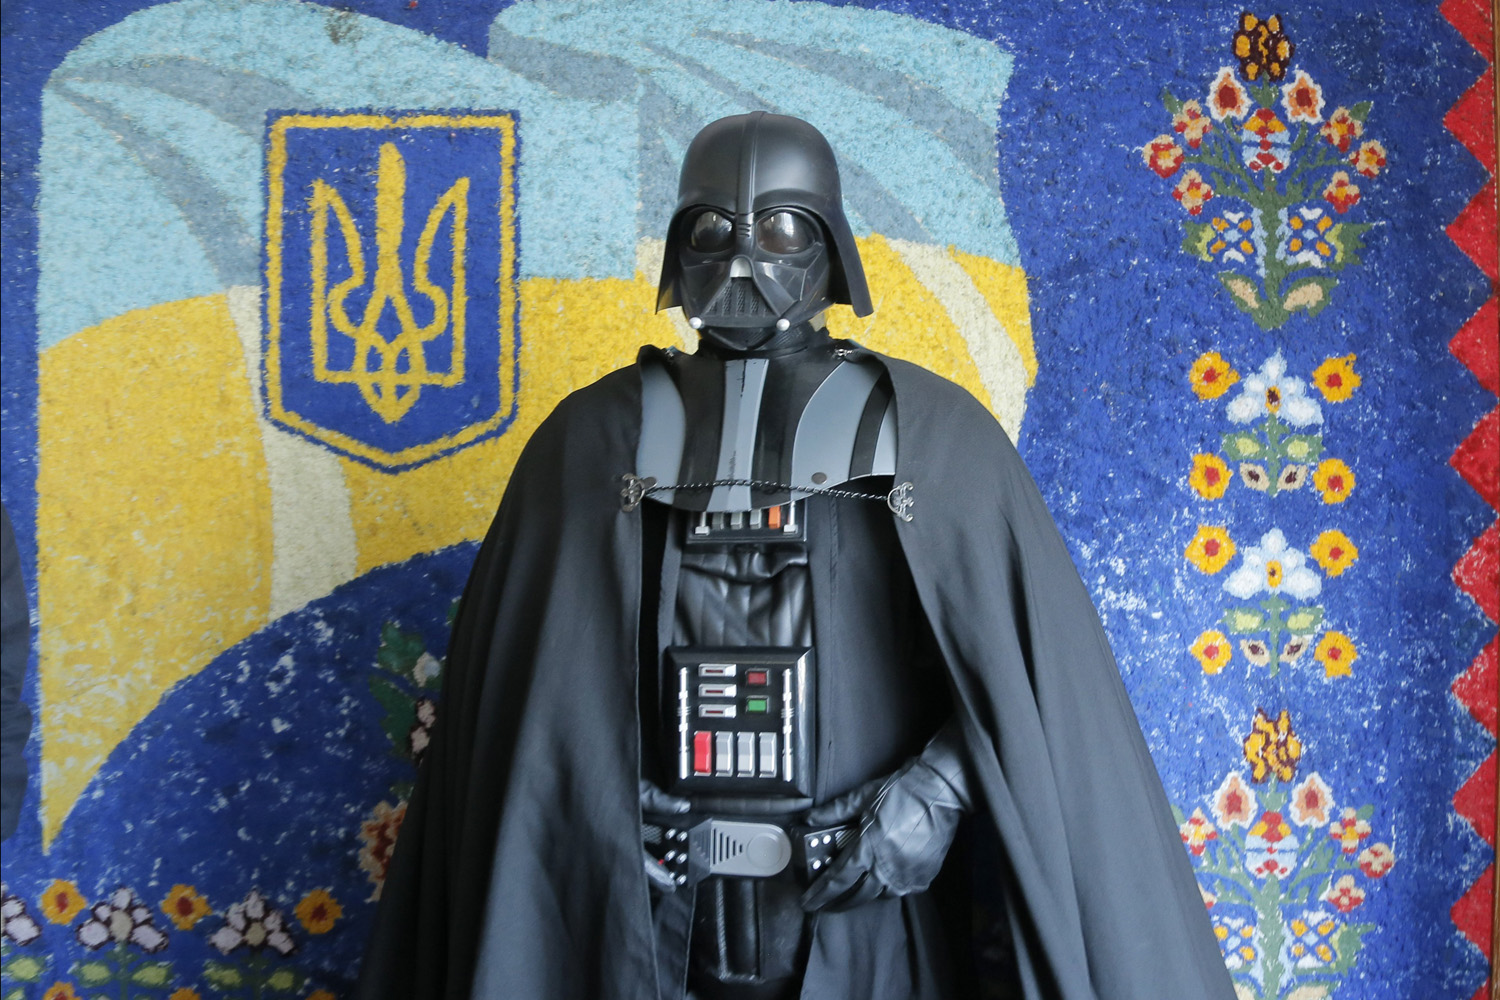 Darth Vader, the Ukrainian Internet Party mayoral candidate for Kiev and Odessa, speaks to the press in front of a painting of the Ukrainian flag at a polling station during the presidential and mayoral elections in Kiev, Ukraine on May, 25, 2014.